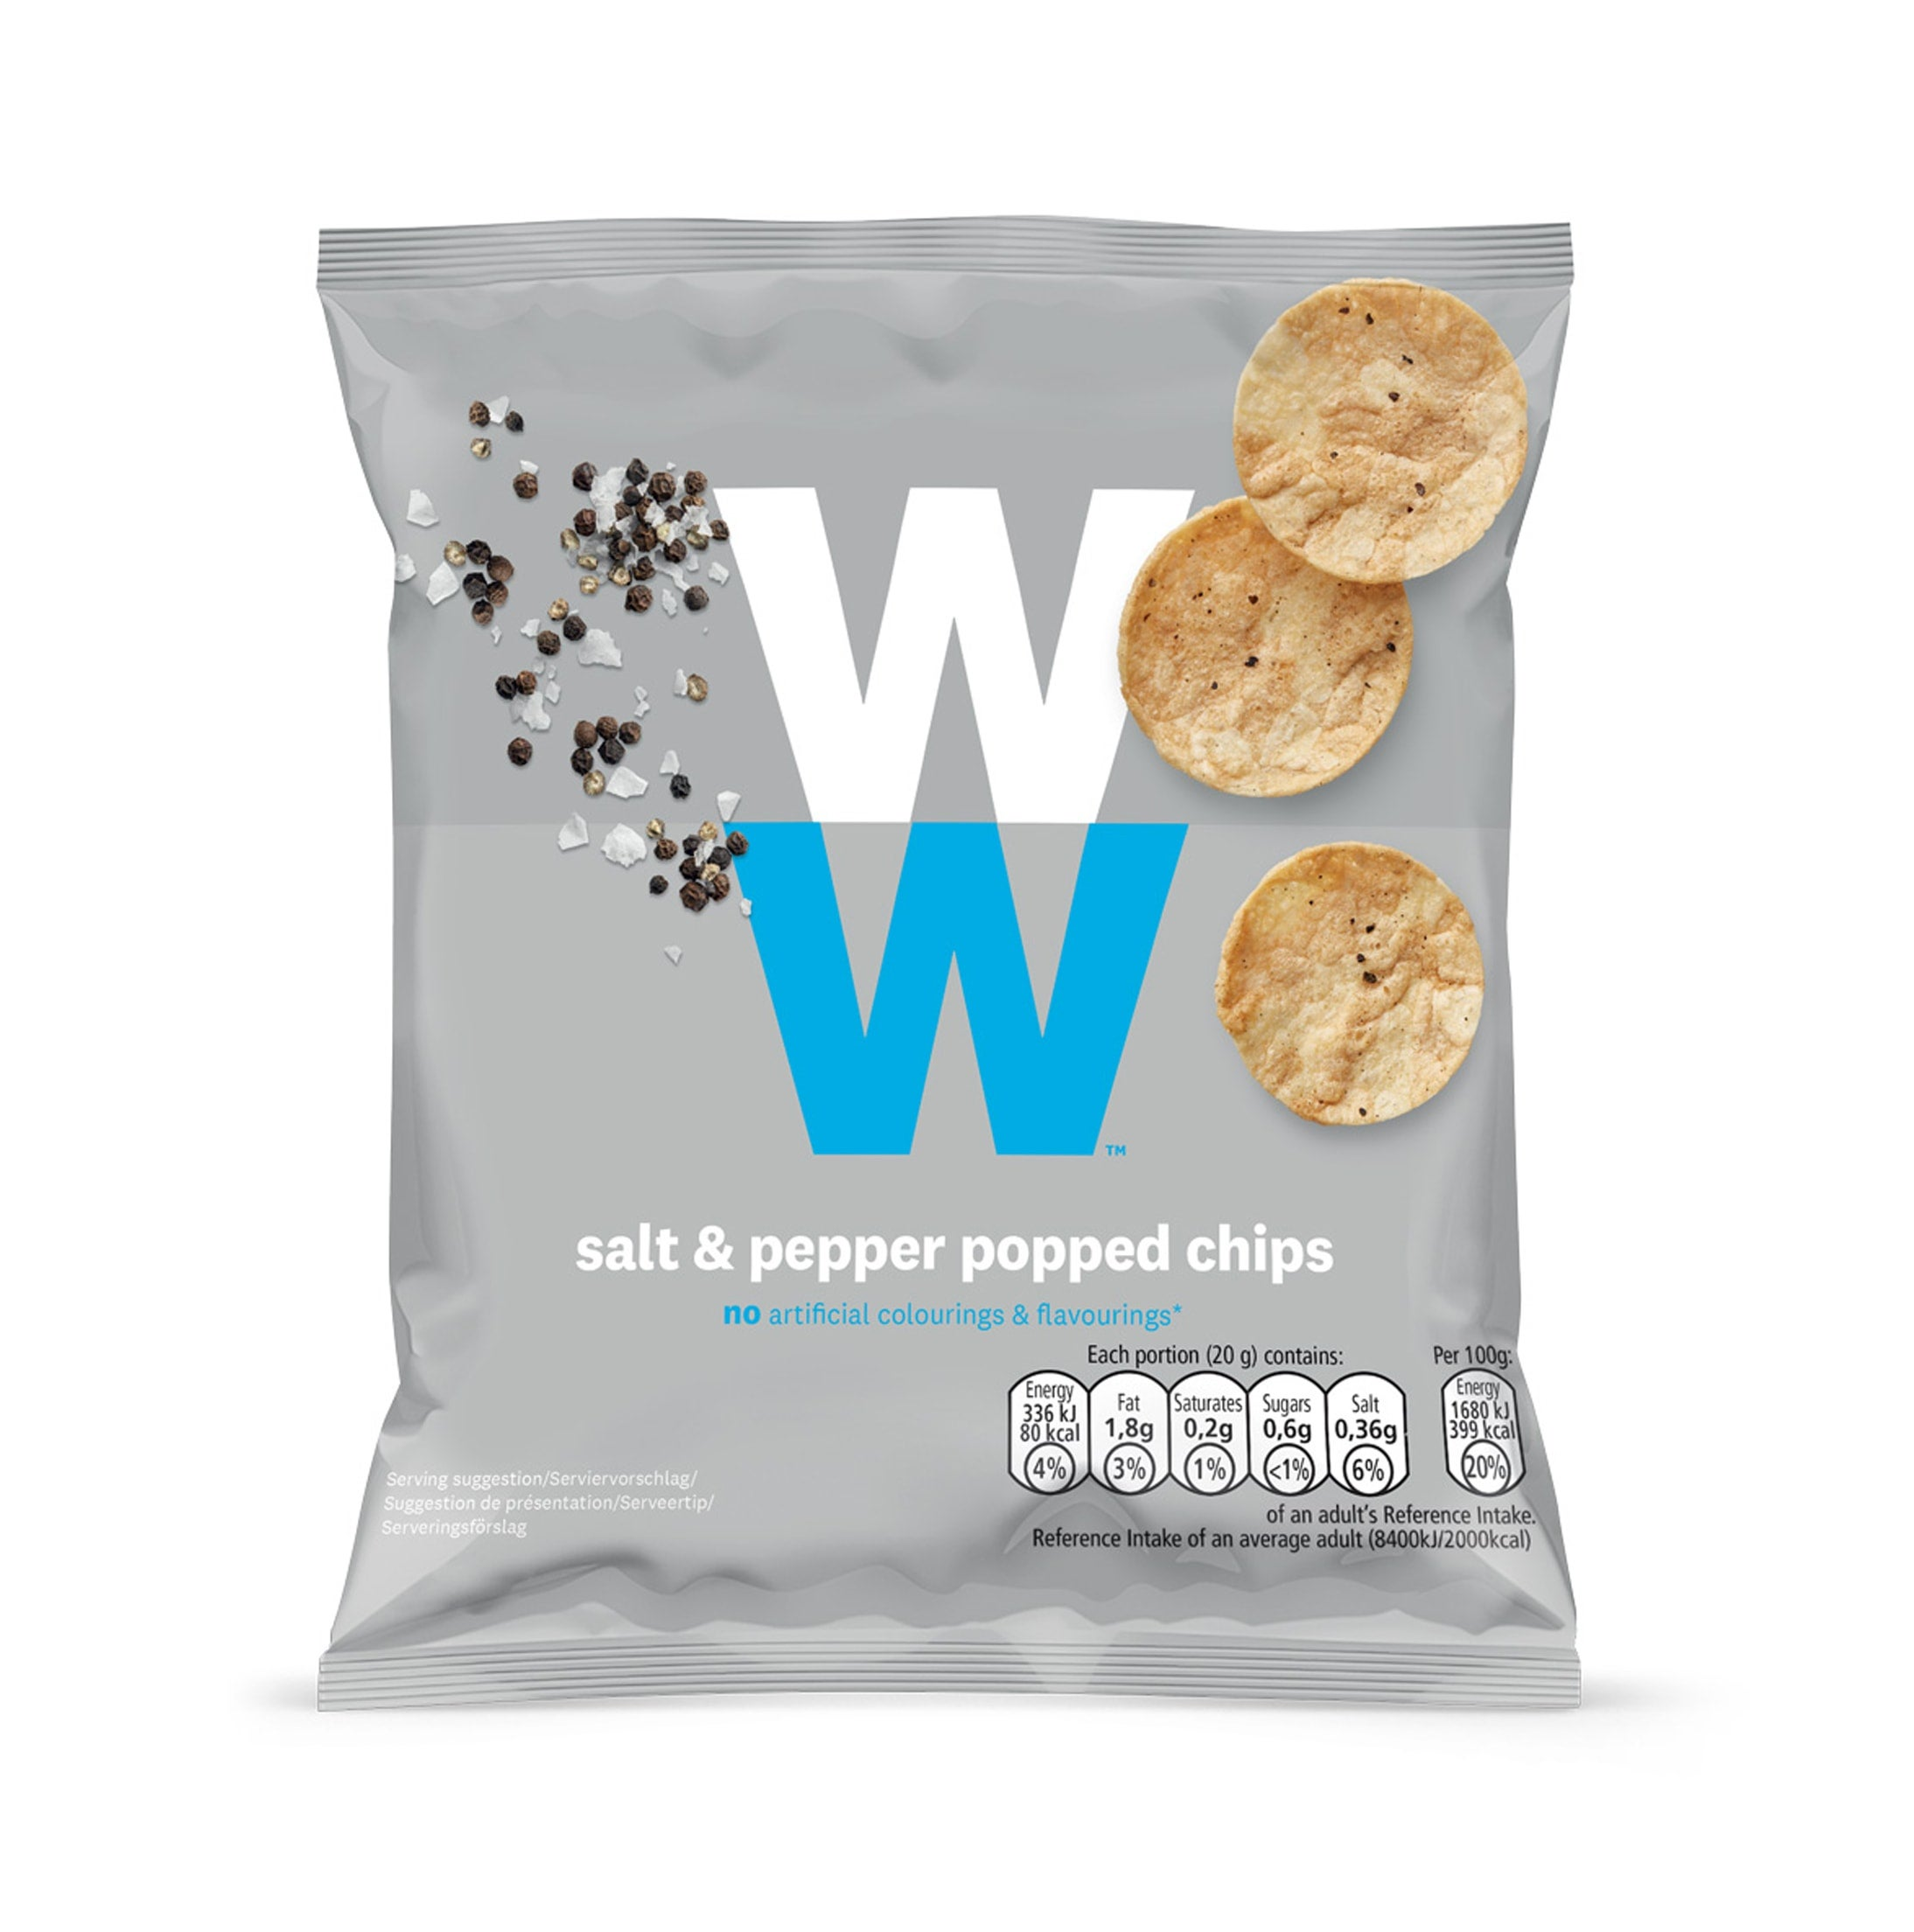 WW Salt & Pepper Popped Chips, salt and pepper flavour, soya and chickpea, baked not fried, 2 SmartPoints values, suitable for vegans